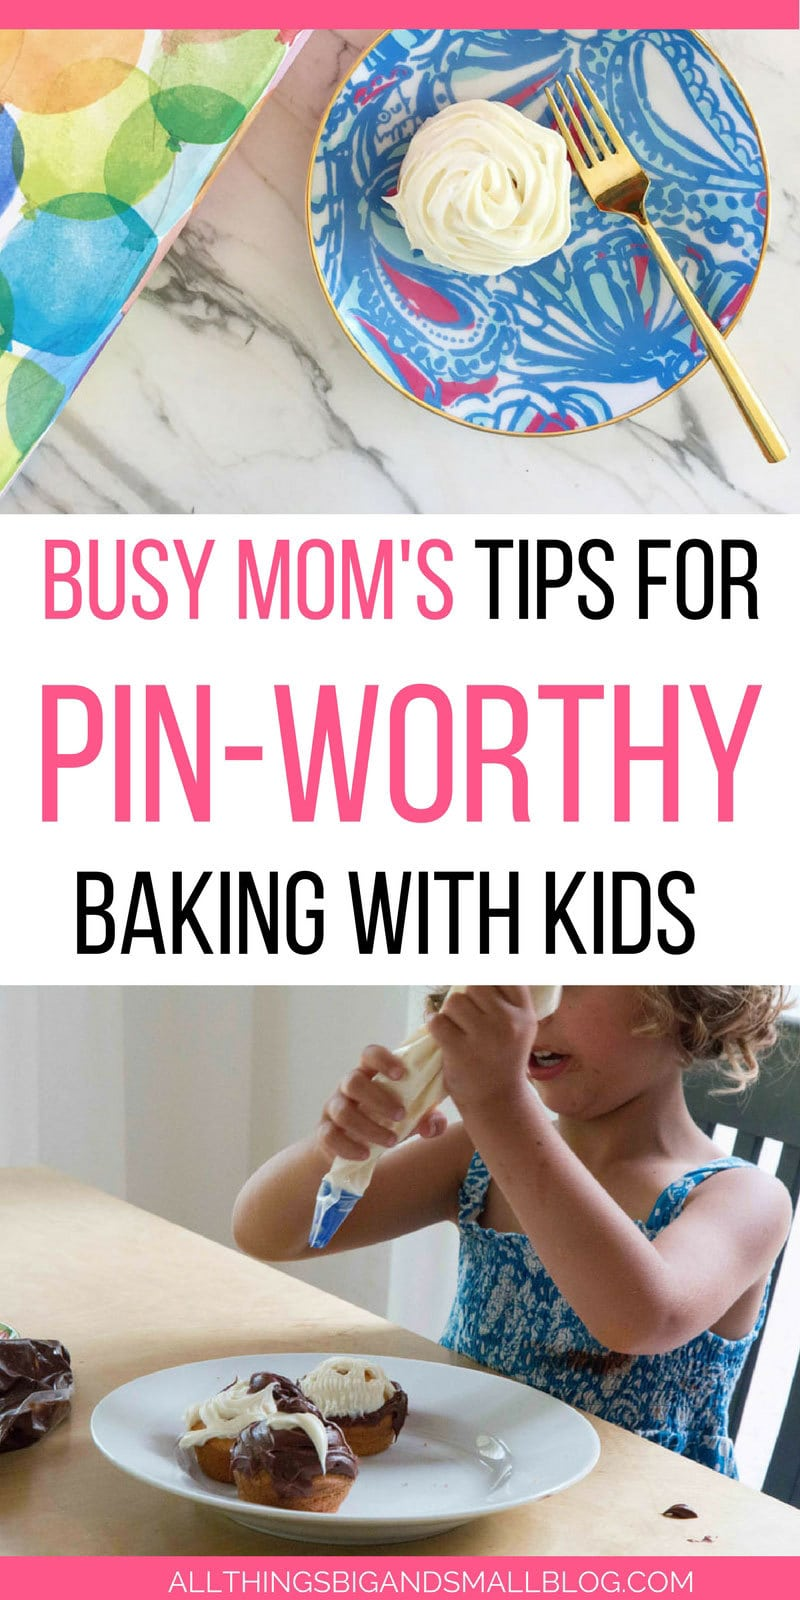 The EASIEST trick for making Pinterest-worthy baking with kids from one super busy mom of three! #AD #Doughboysurprise